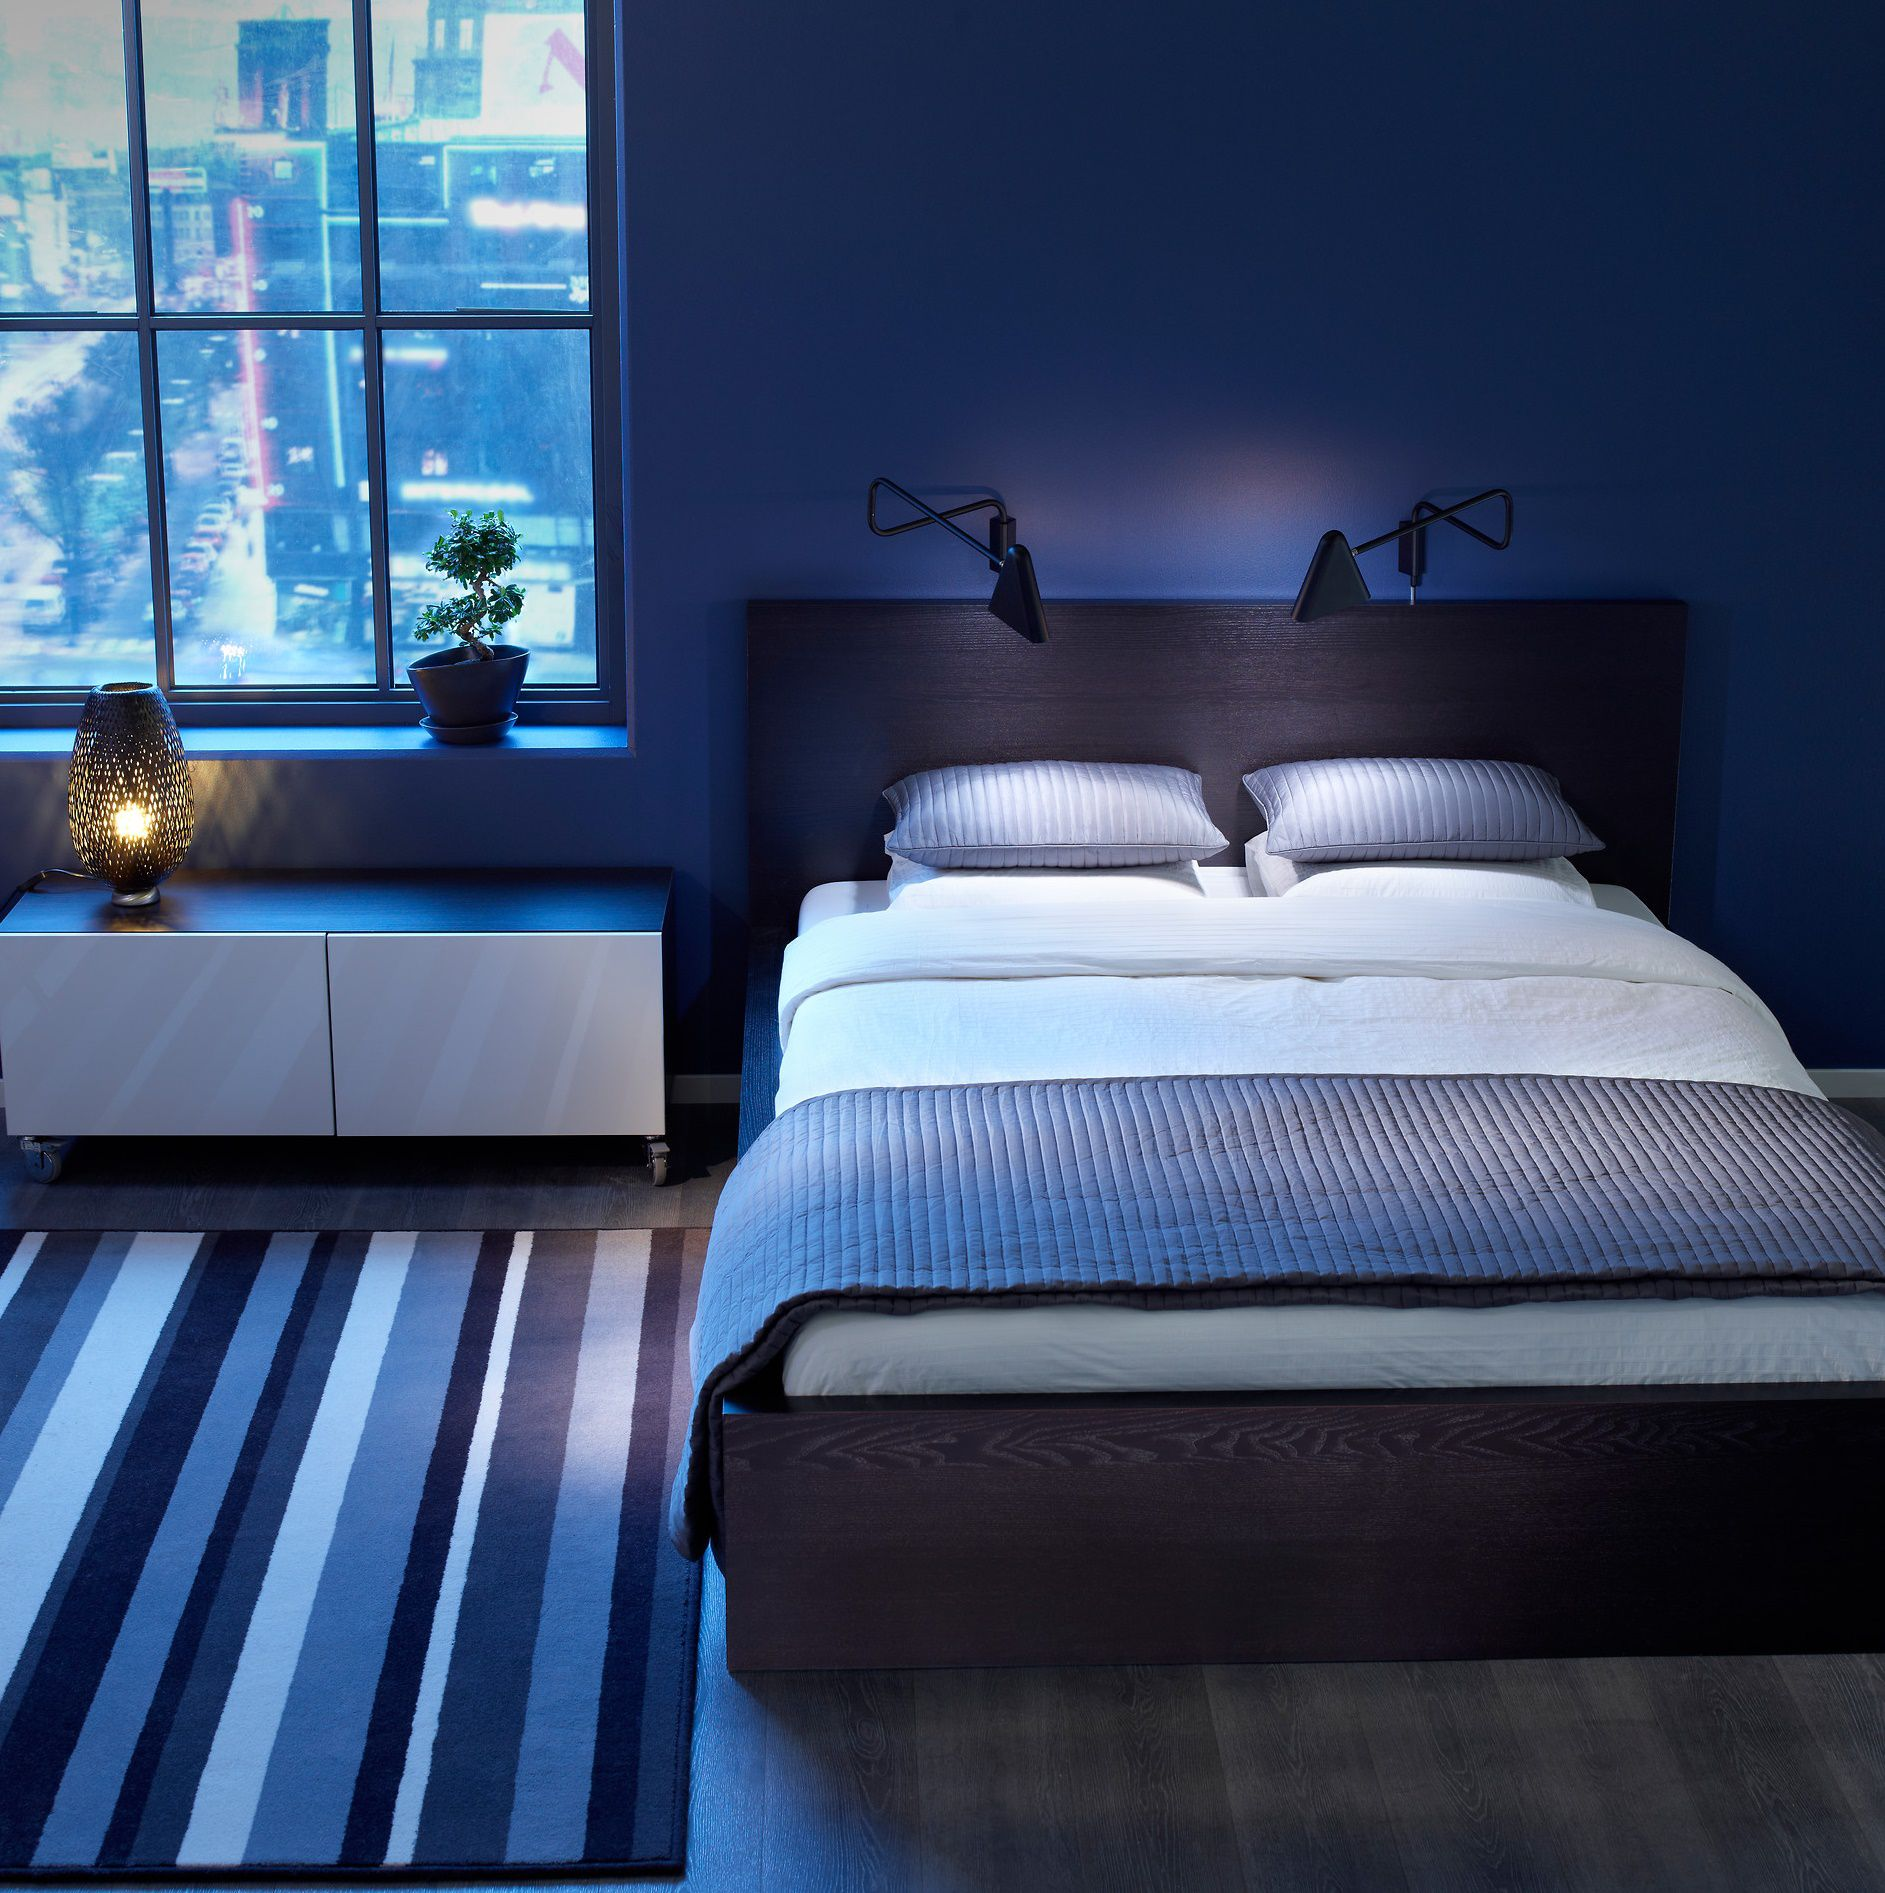 Amusing Design Of The Bedroom Paint Color Ideas With Blue Rugs And Blue Wall Ideas Added With Blue Lights Ideas